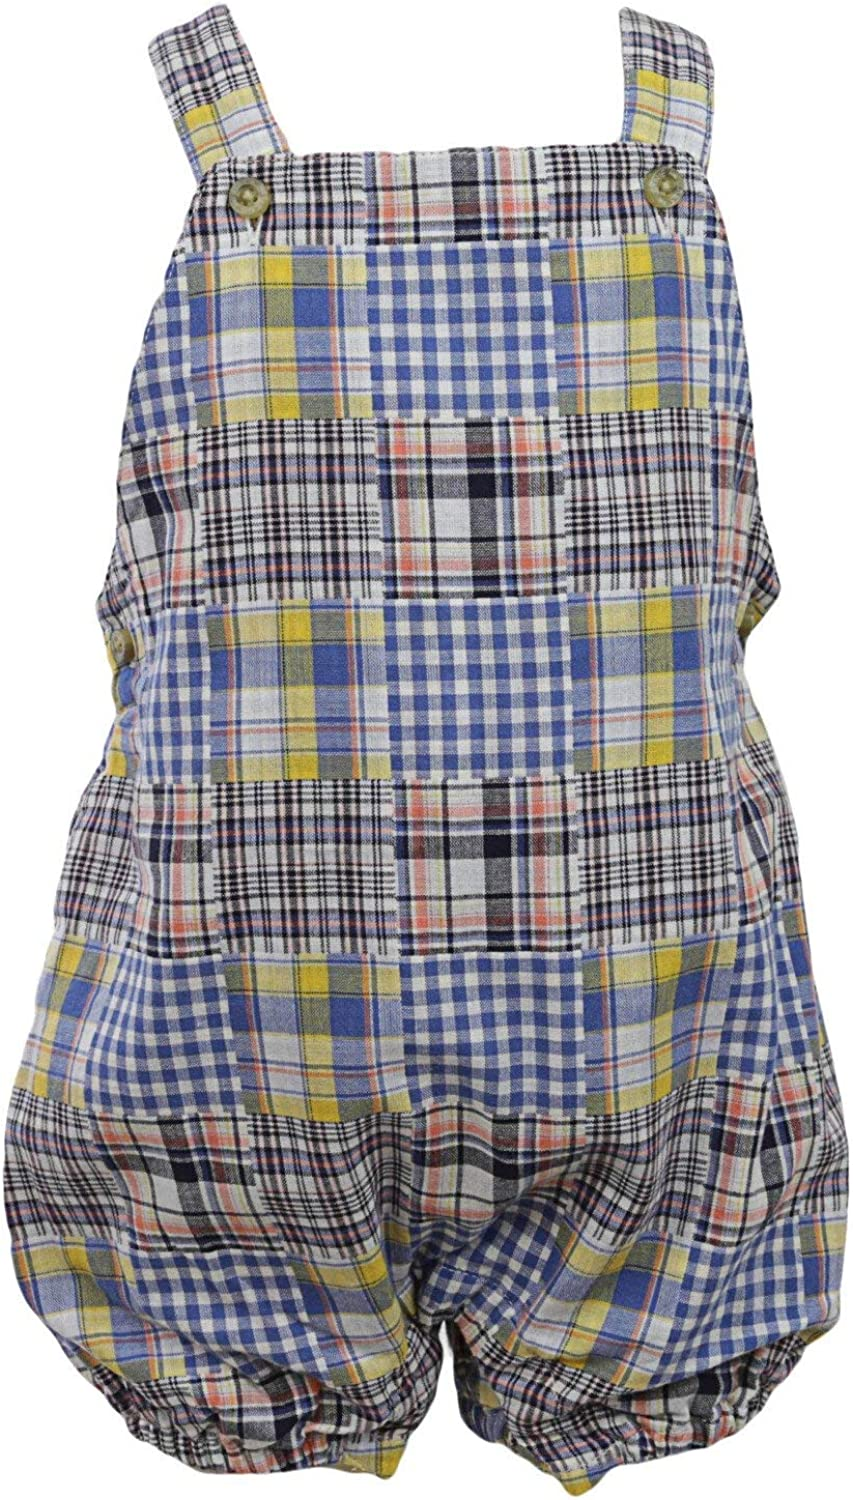 Janie and Jack Patchwork Overall